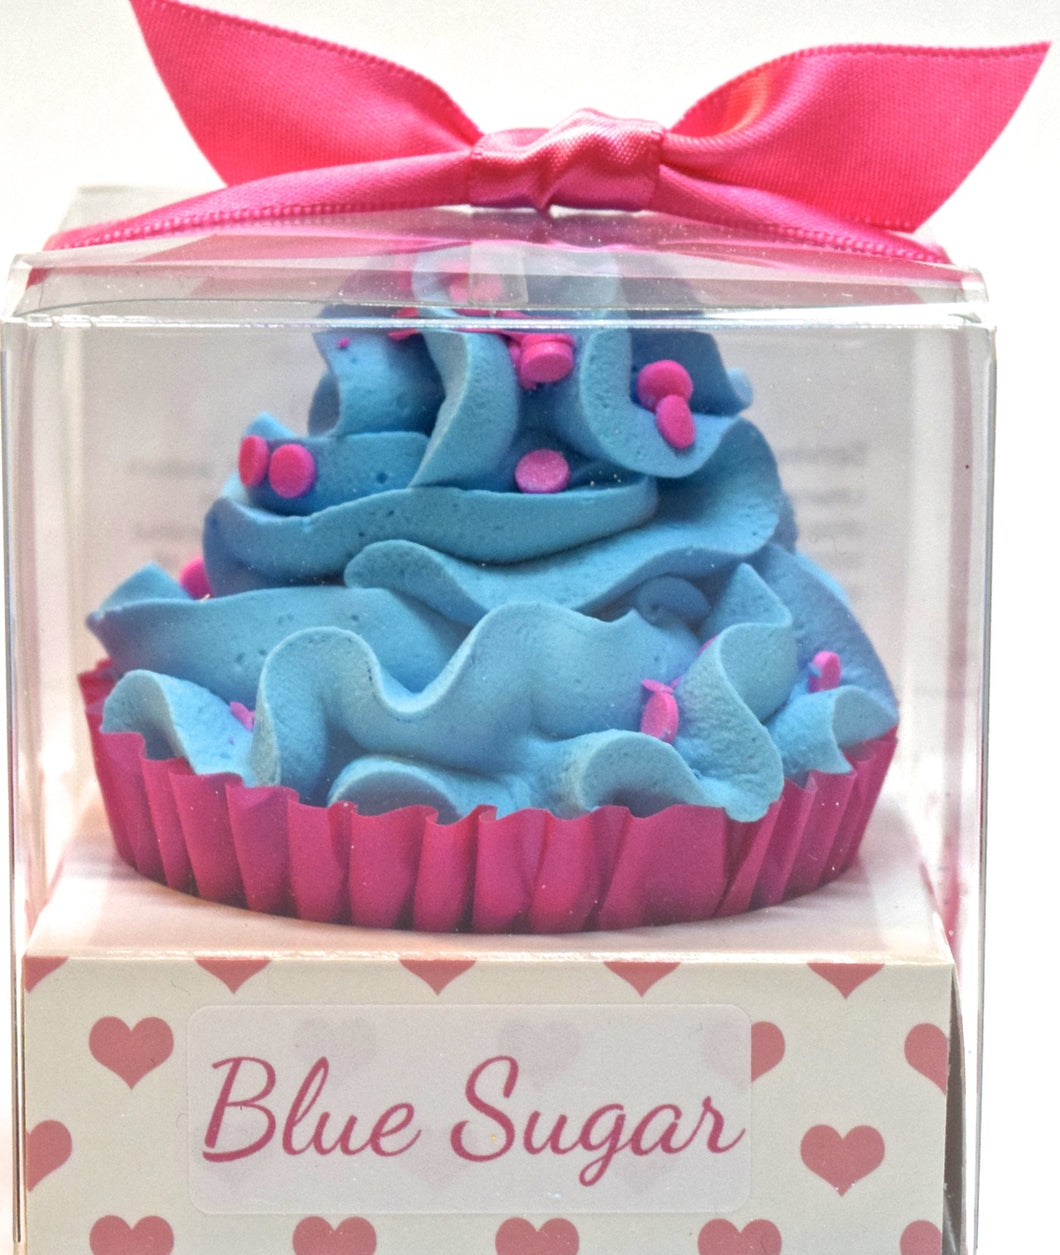 Blue Sugar Cupcake Bath Bomb